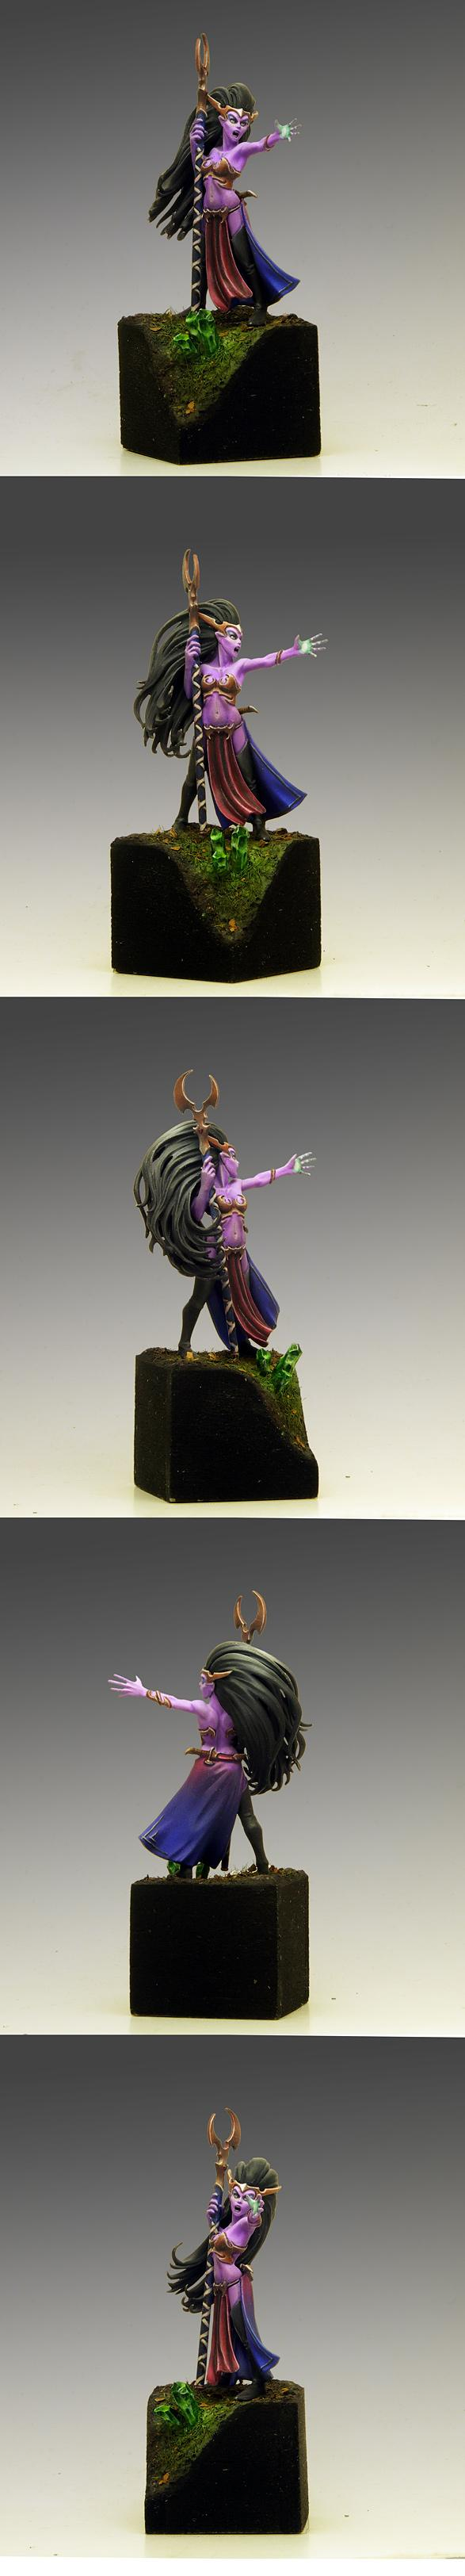 Dark Elves, Sorceress, Warhammer Fantasy, Wfb, Wizard